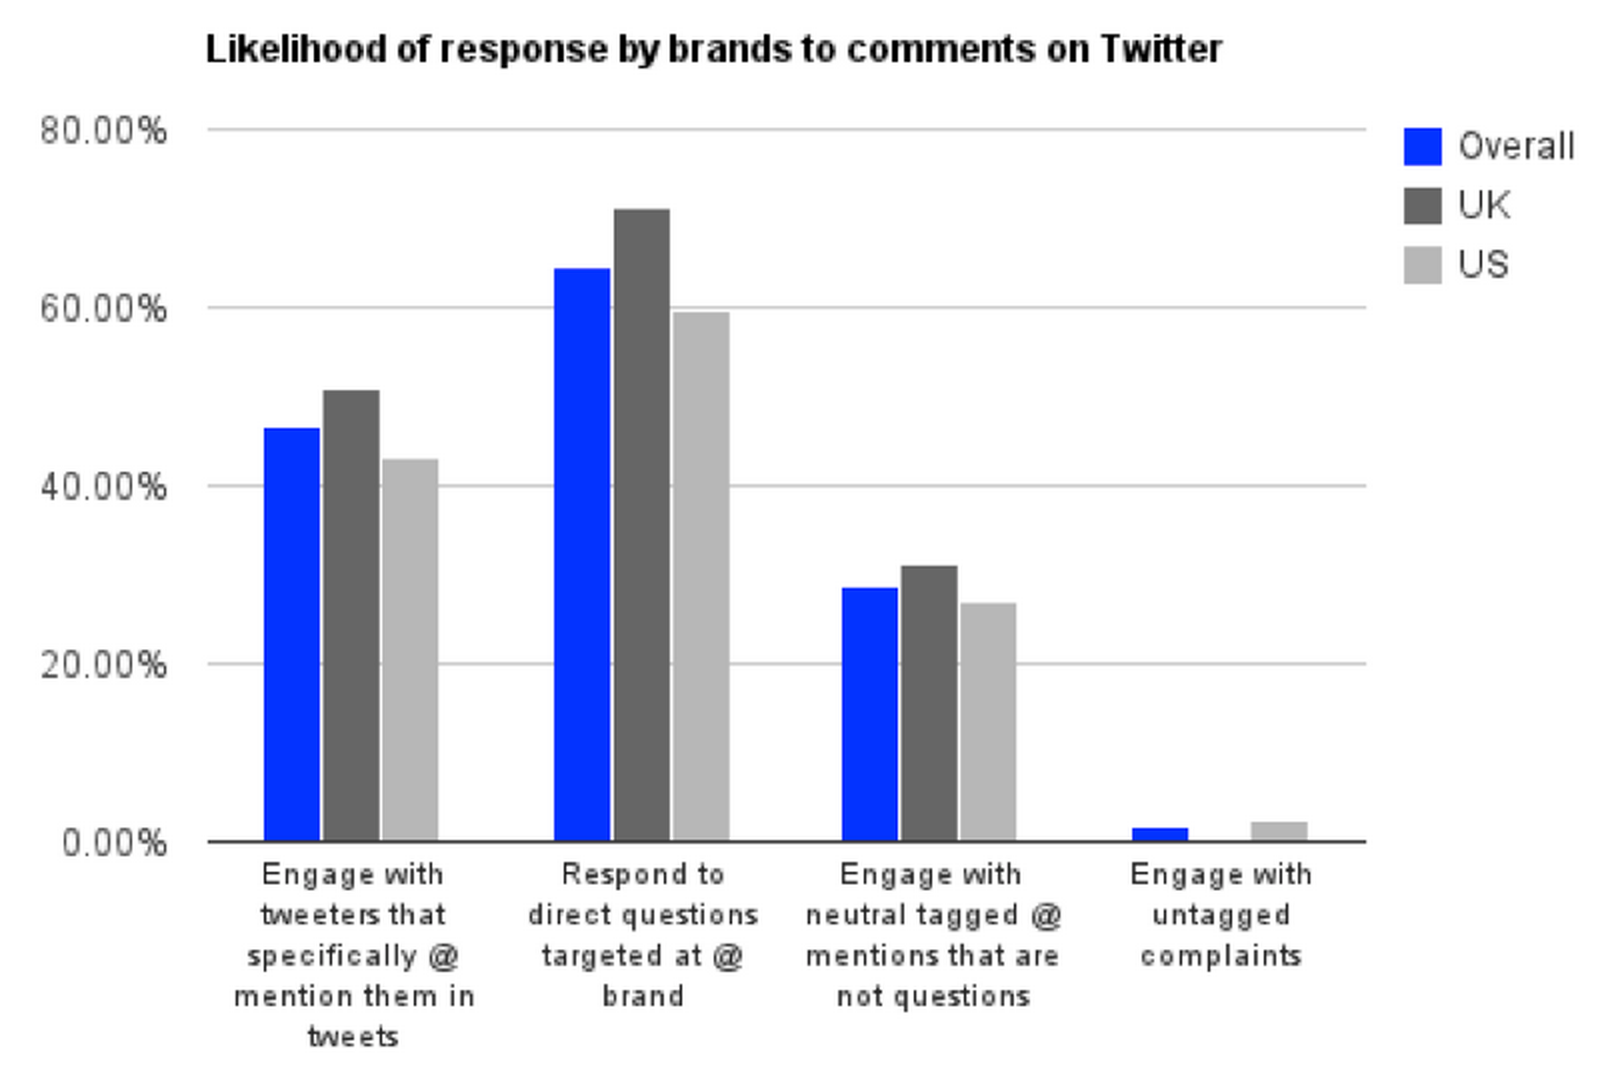 Likelihood-of-response-by-brands-to-comments-on-twitter_png__938×580_